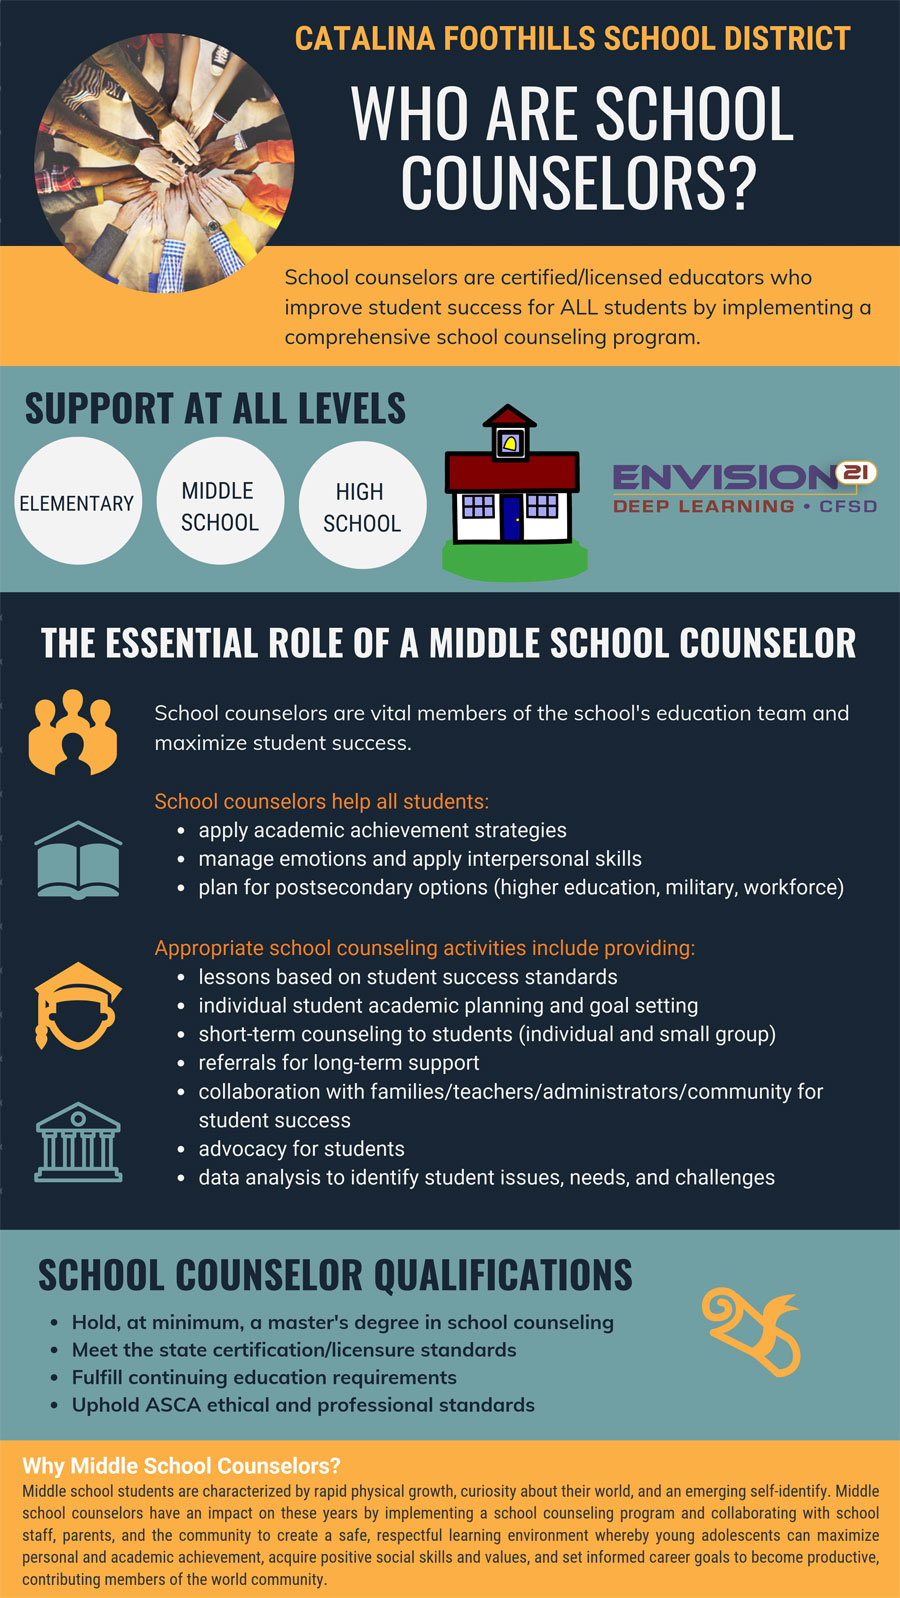 Roles of a school counselor